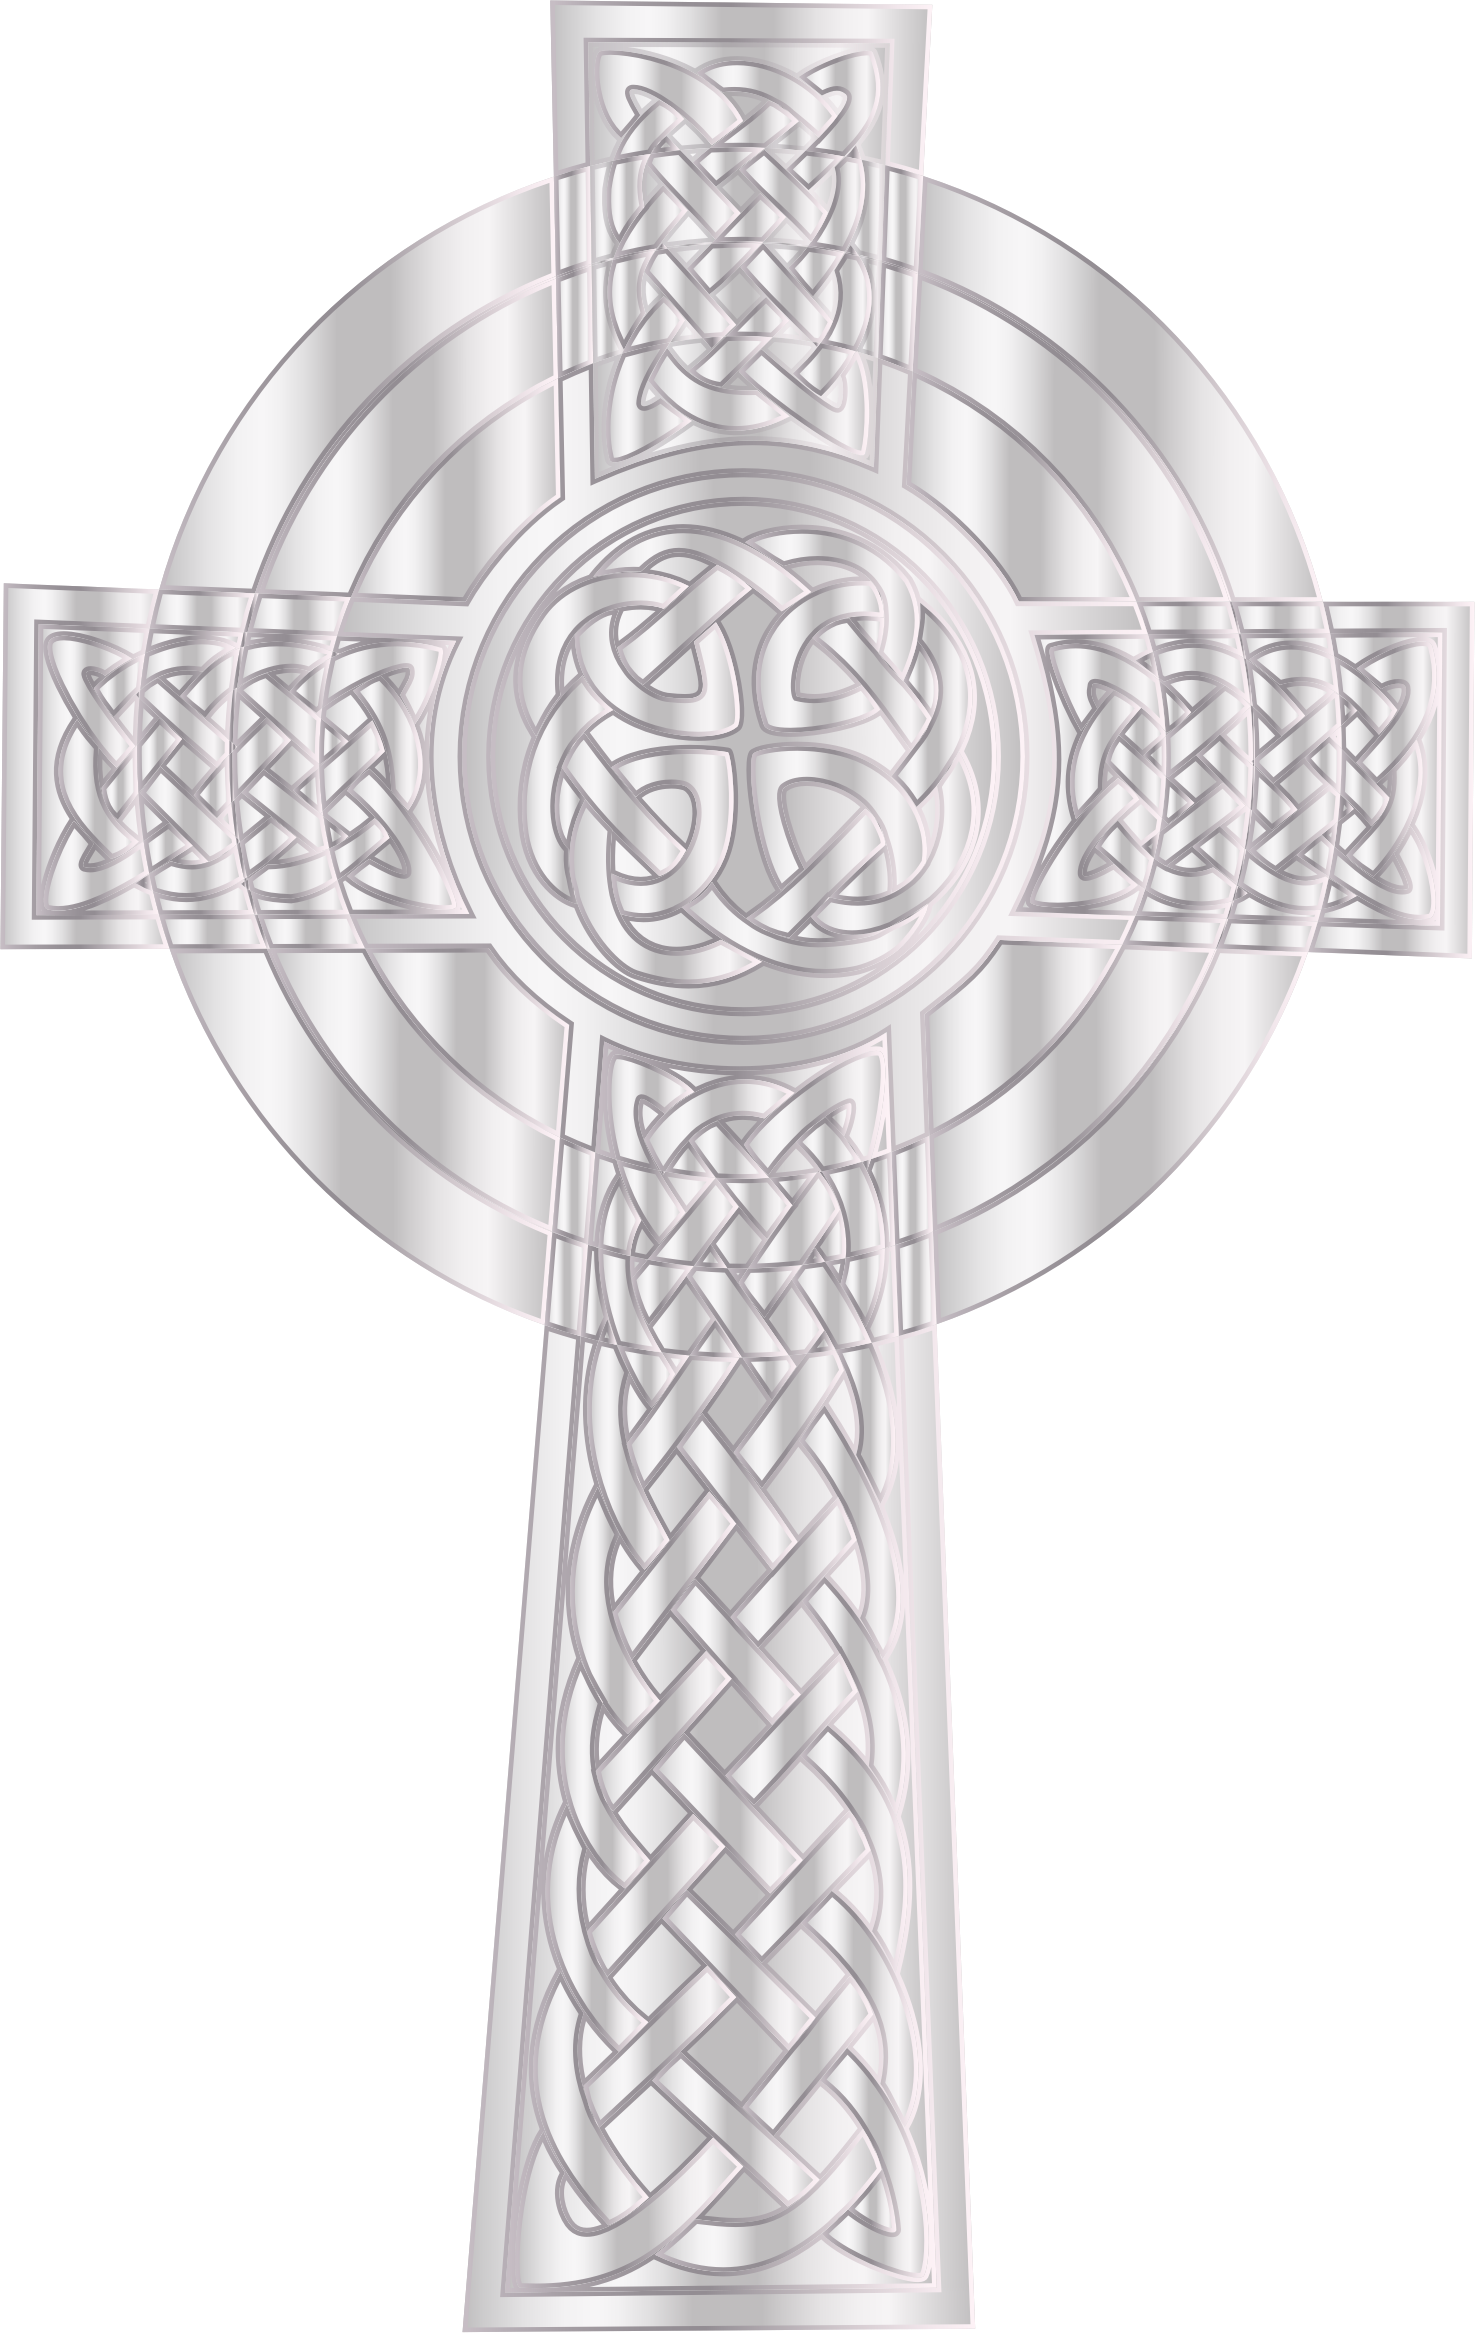 Silver cross clipart png image black and white download Clipart - Silver Celtic Cross 2 image black and white download